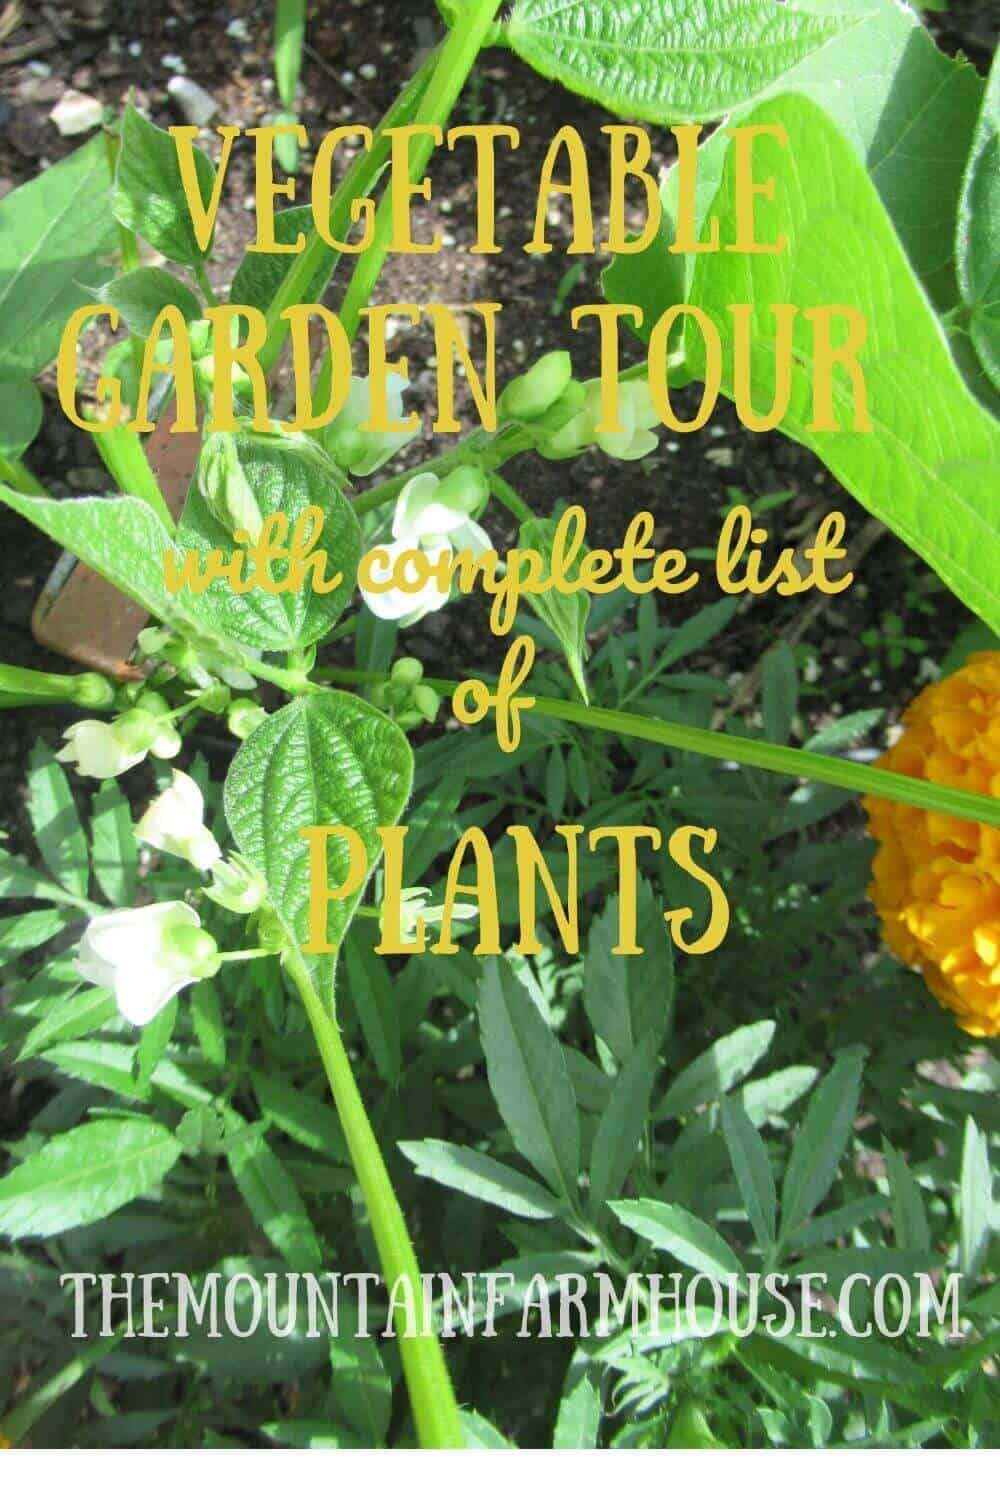 """Pin Picture of Bean Flowers and Marigolds """"Vegetable Garden Tour with complete list of plants"""""""